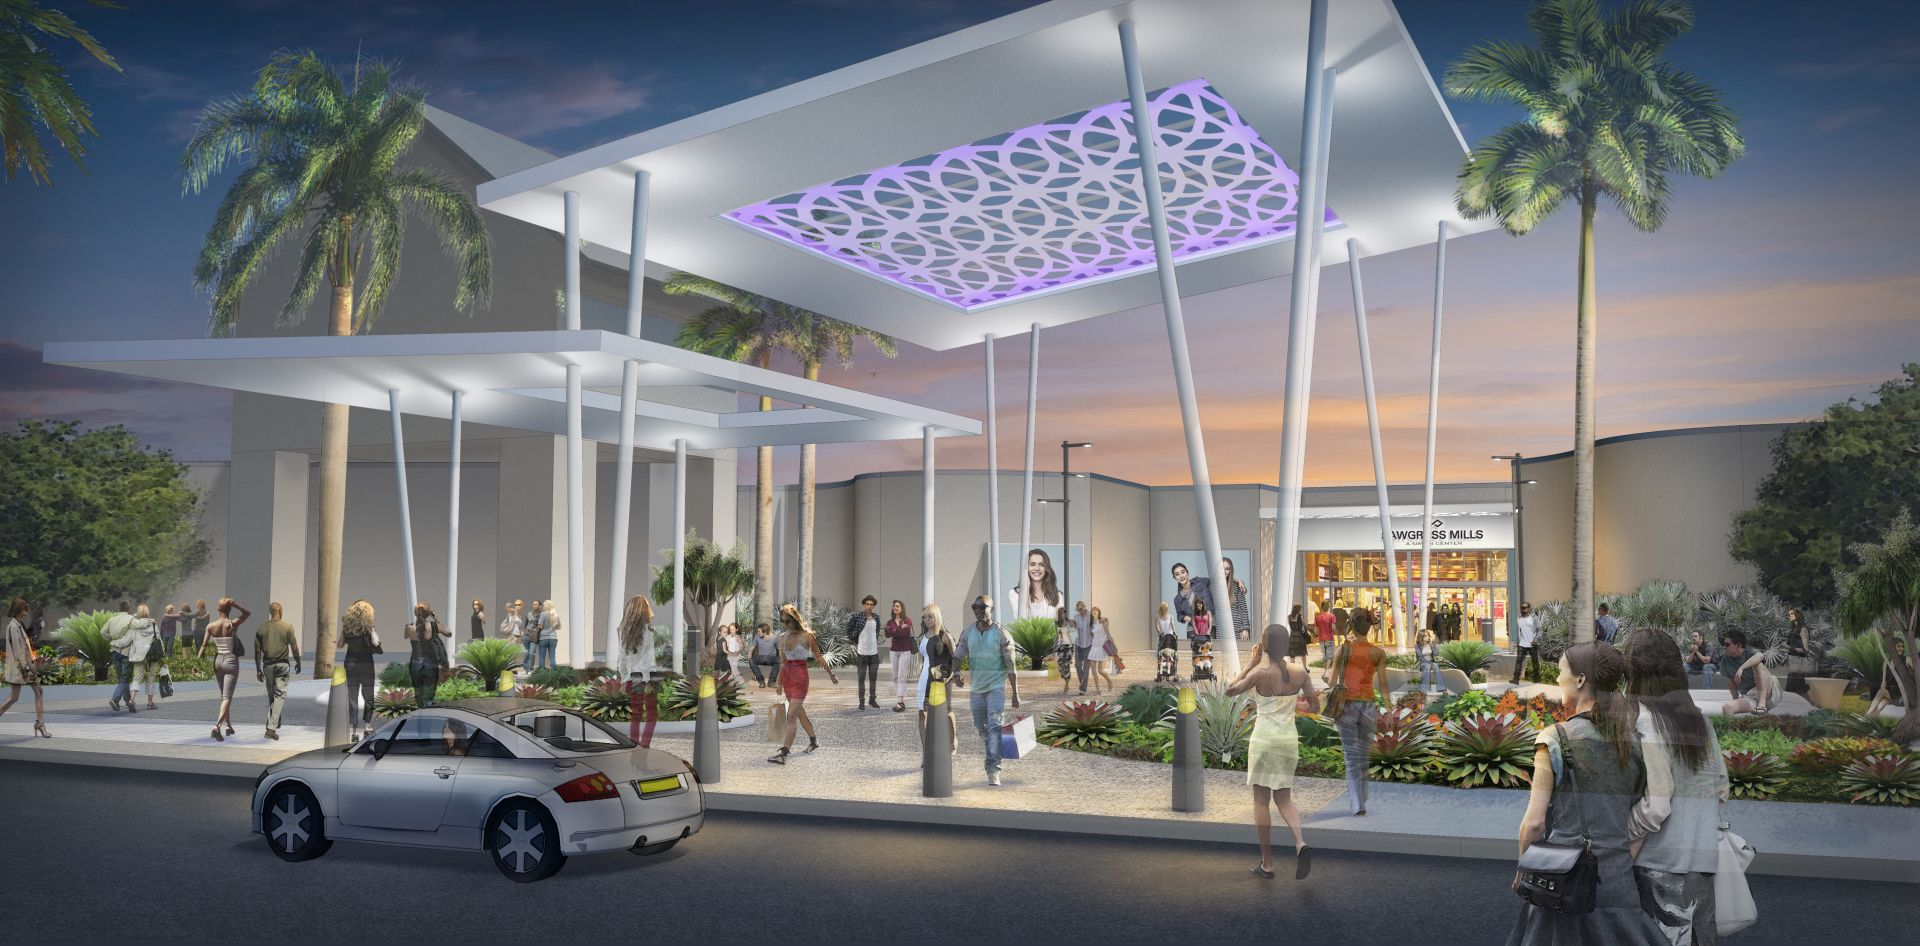 Nation's Largest Outlet Mall Gets Major Facelift, Reflecting New Front in US Retail Battle